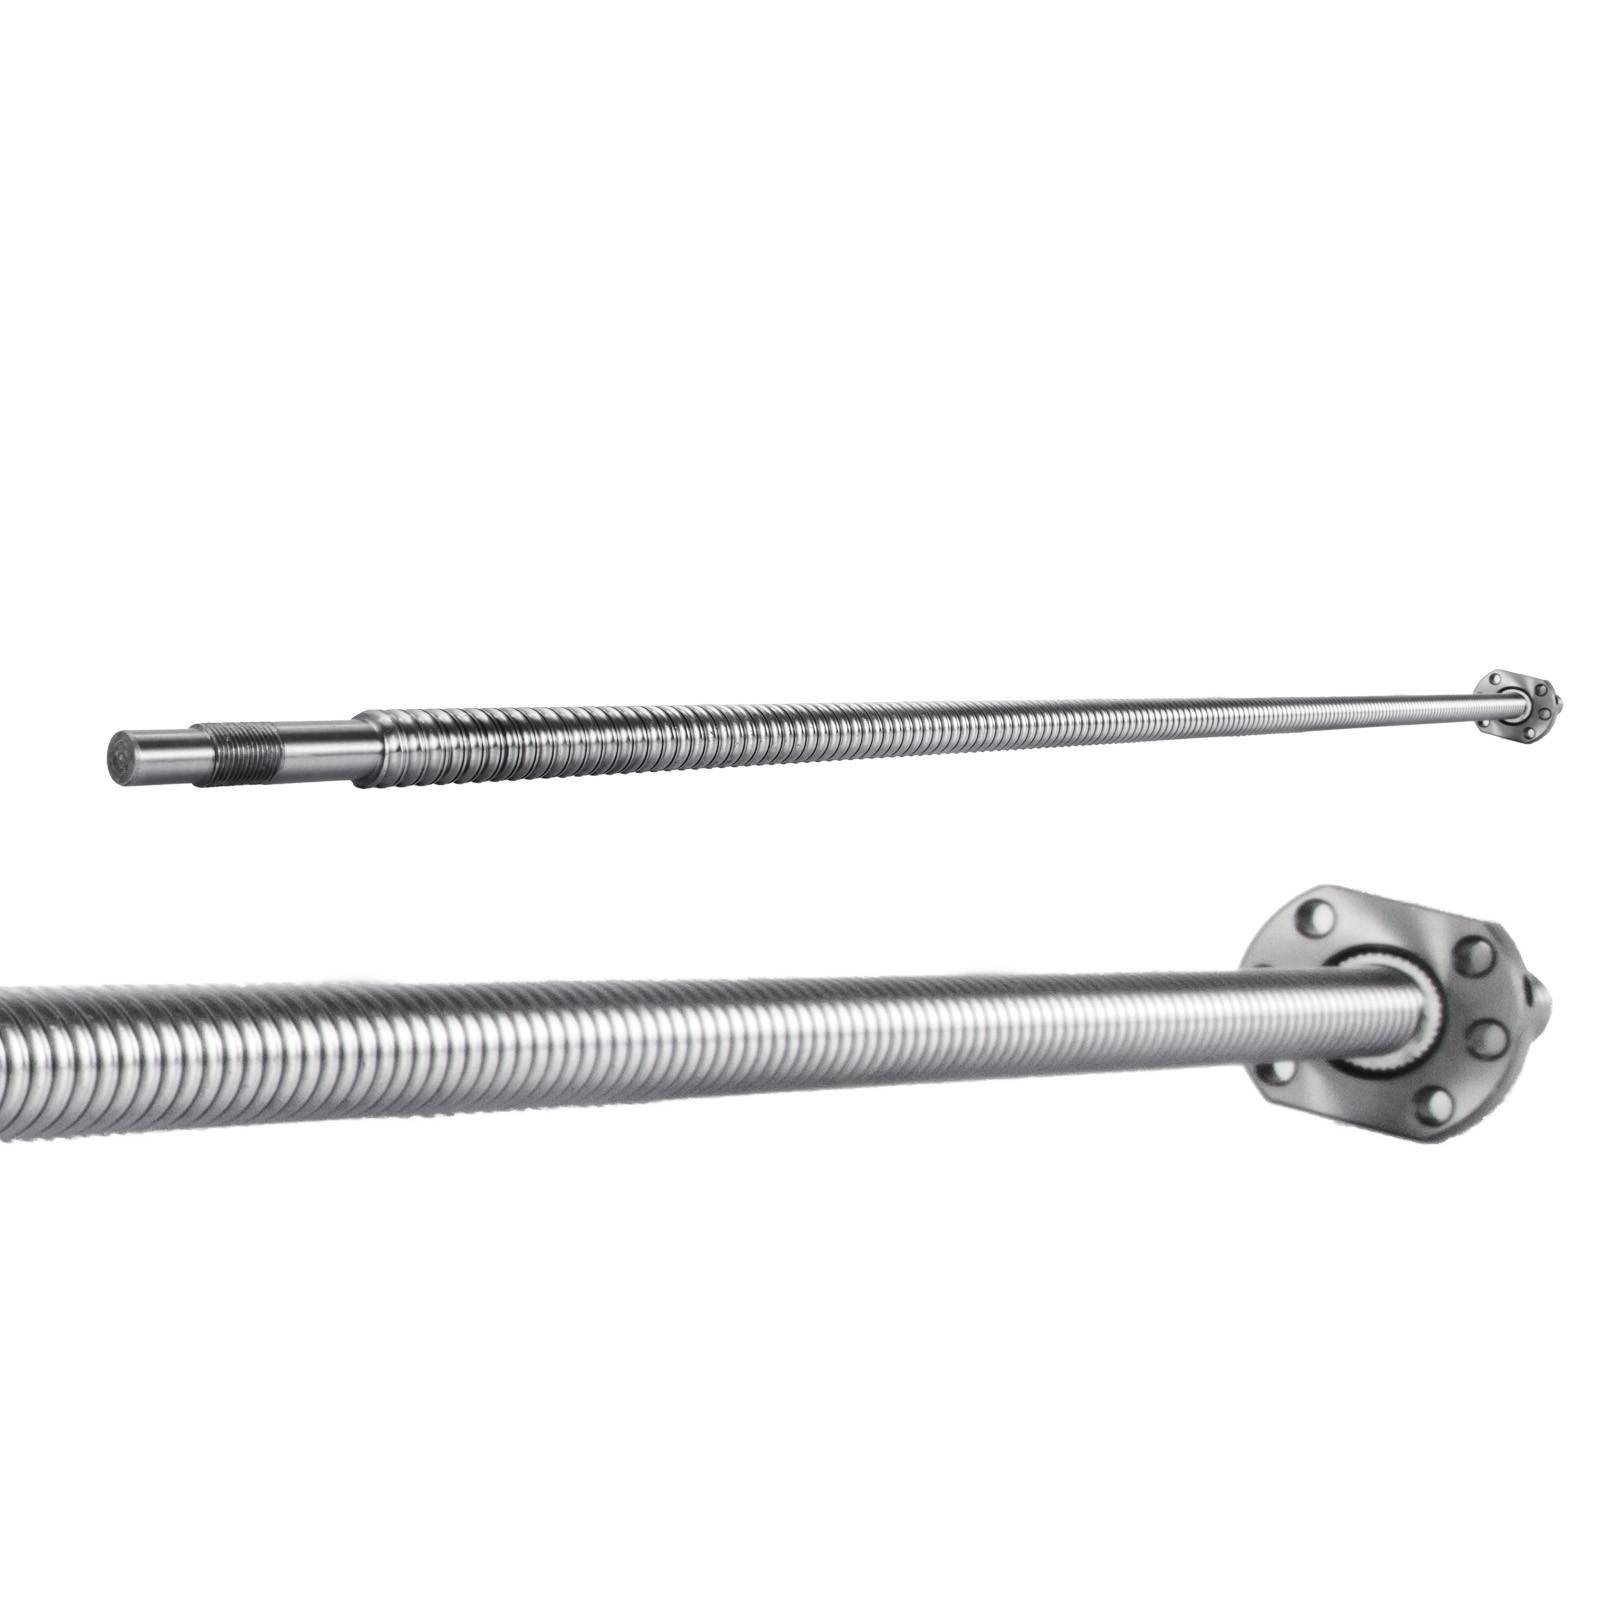 SFU1605-350-1500mm-Rolled-Ball-Screw-With-Ballnut-For-BK-BF12-End-Machined-CNC thumbnail 64